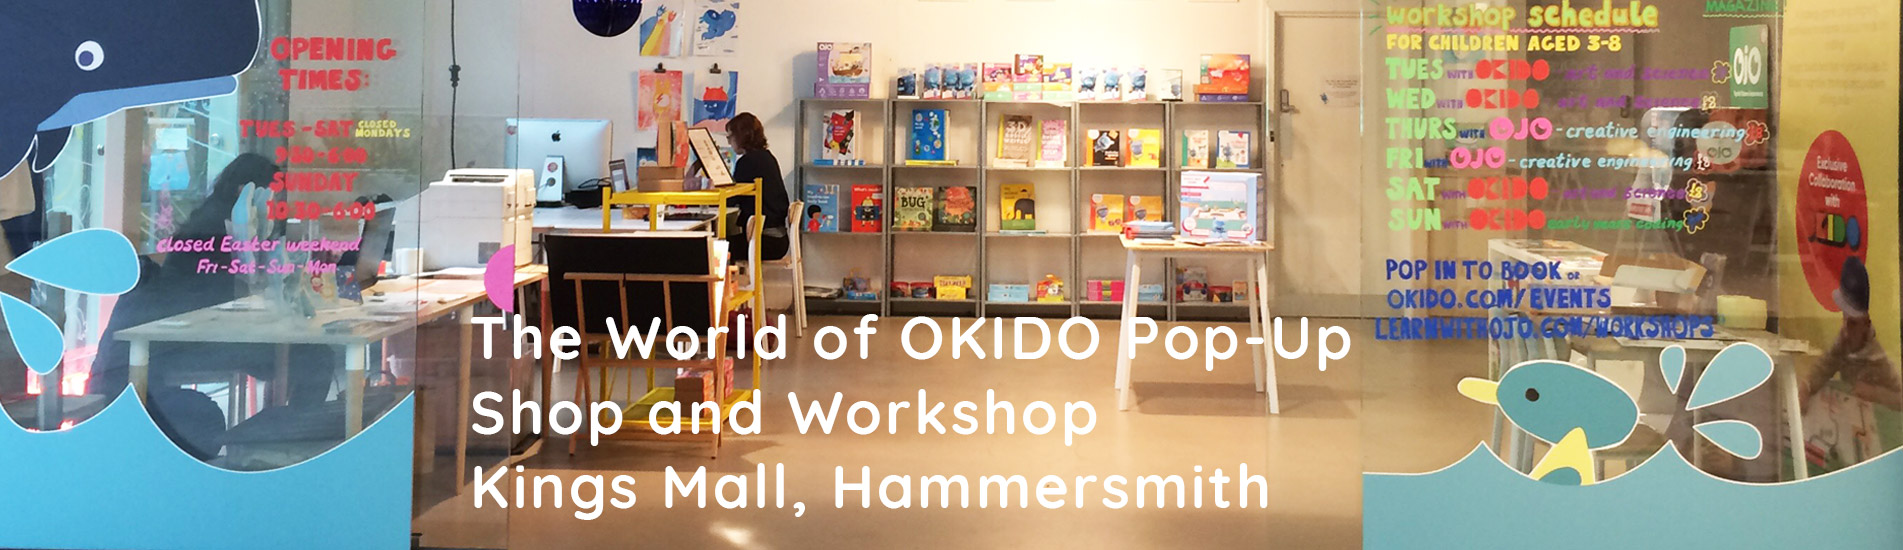 World of OKIDO Pop Up Shop and Workshop in Kings Mall, Hammersmith